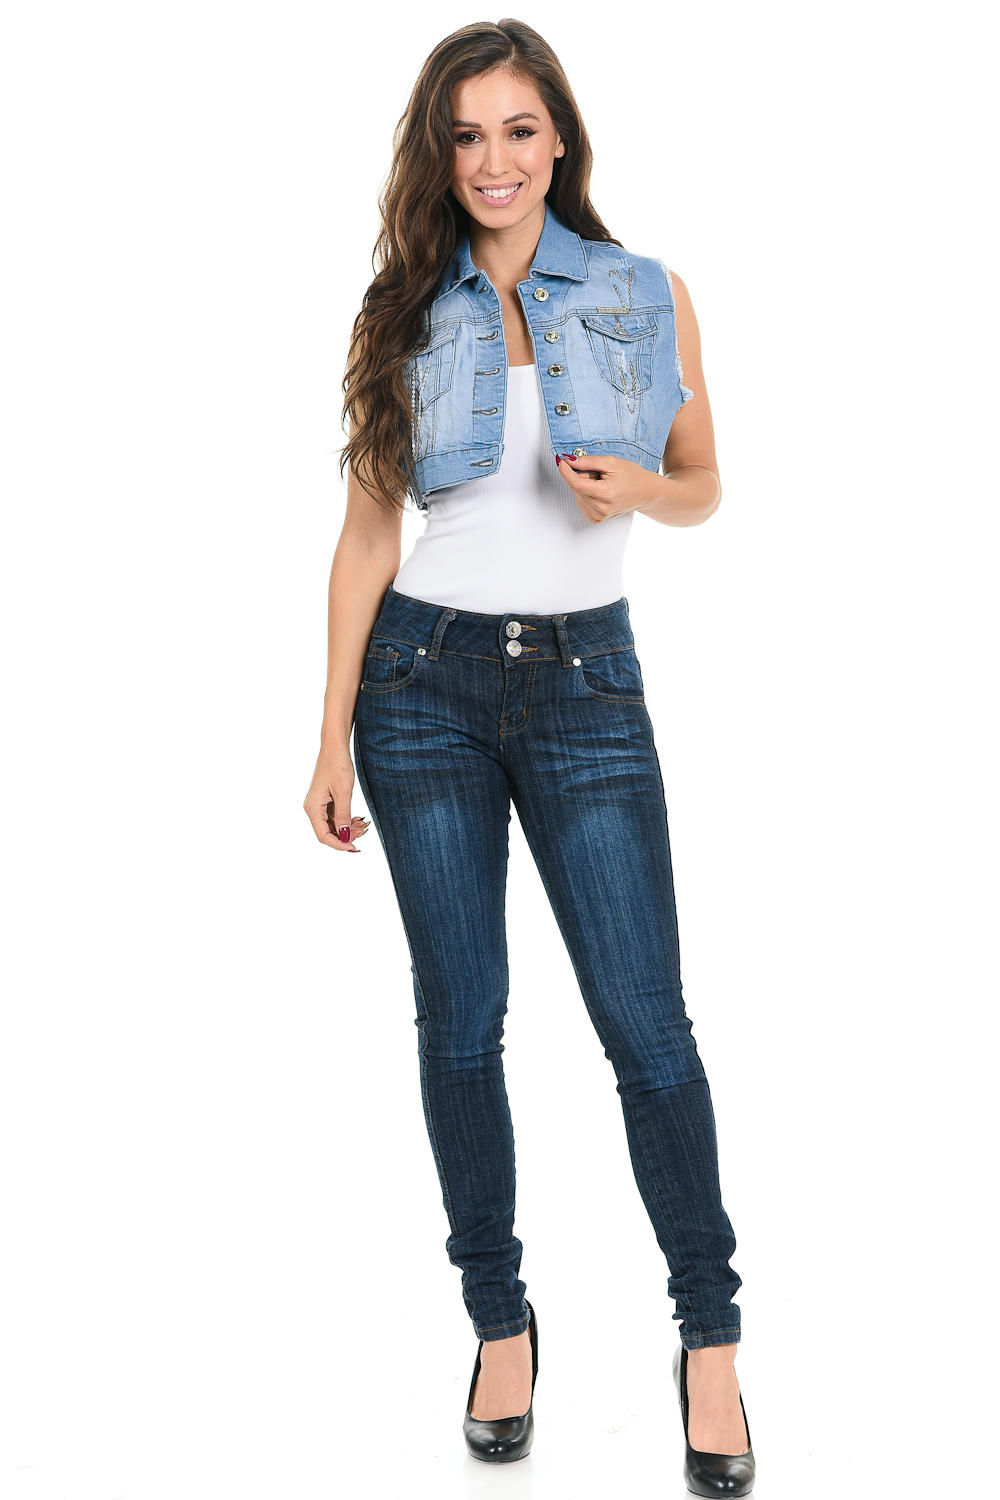 Sweet Look Women's Denim Vest - Style 514B